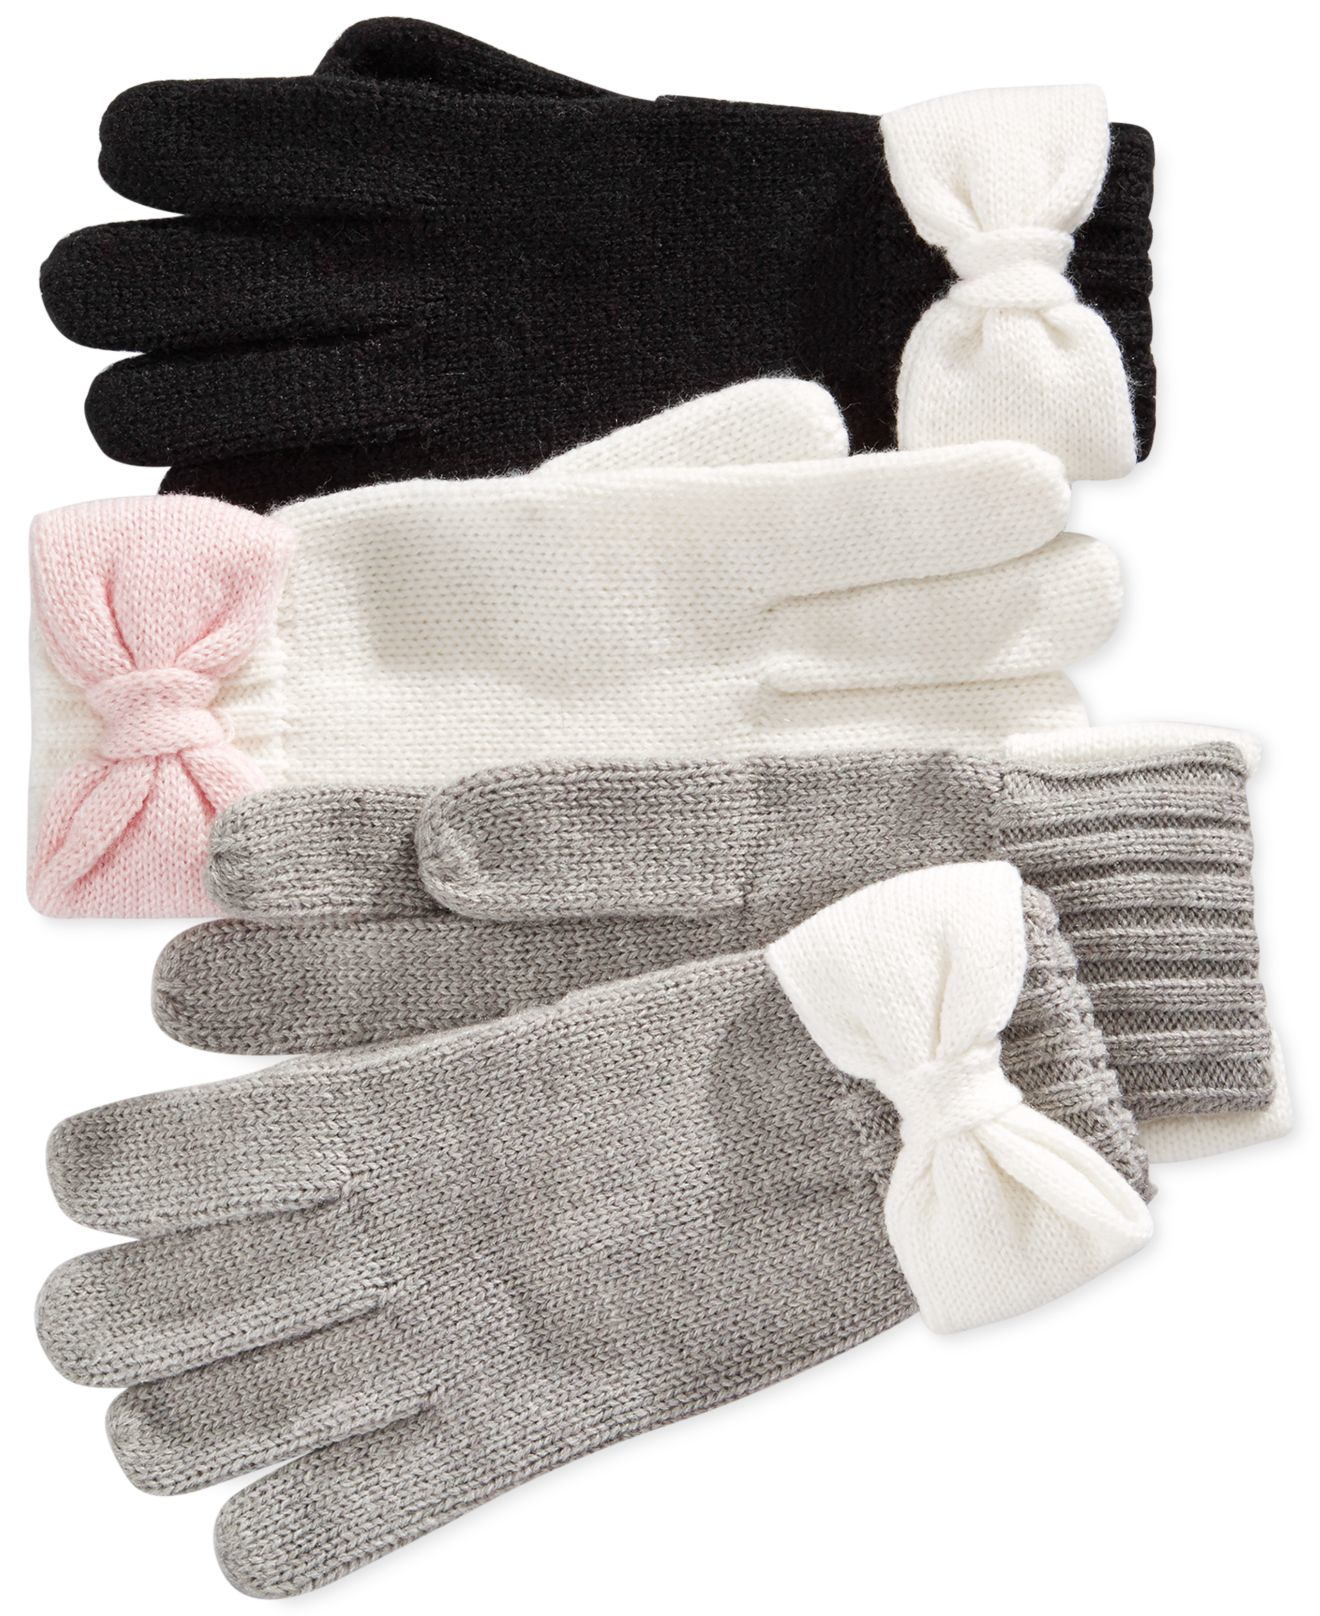 Black gloves with bow - Gallery